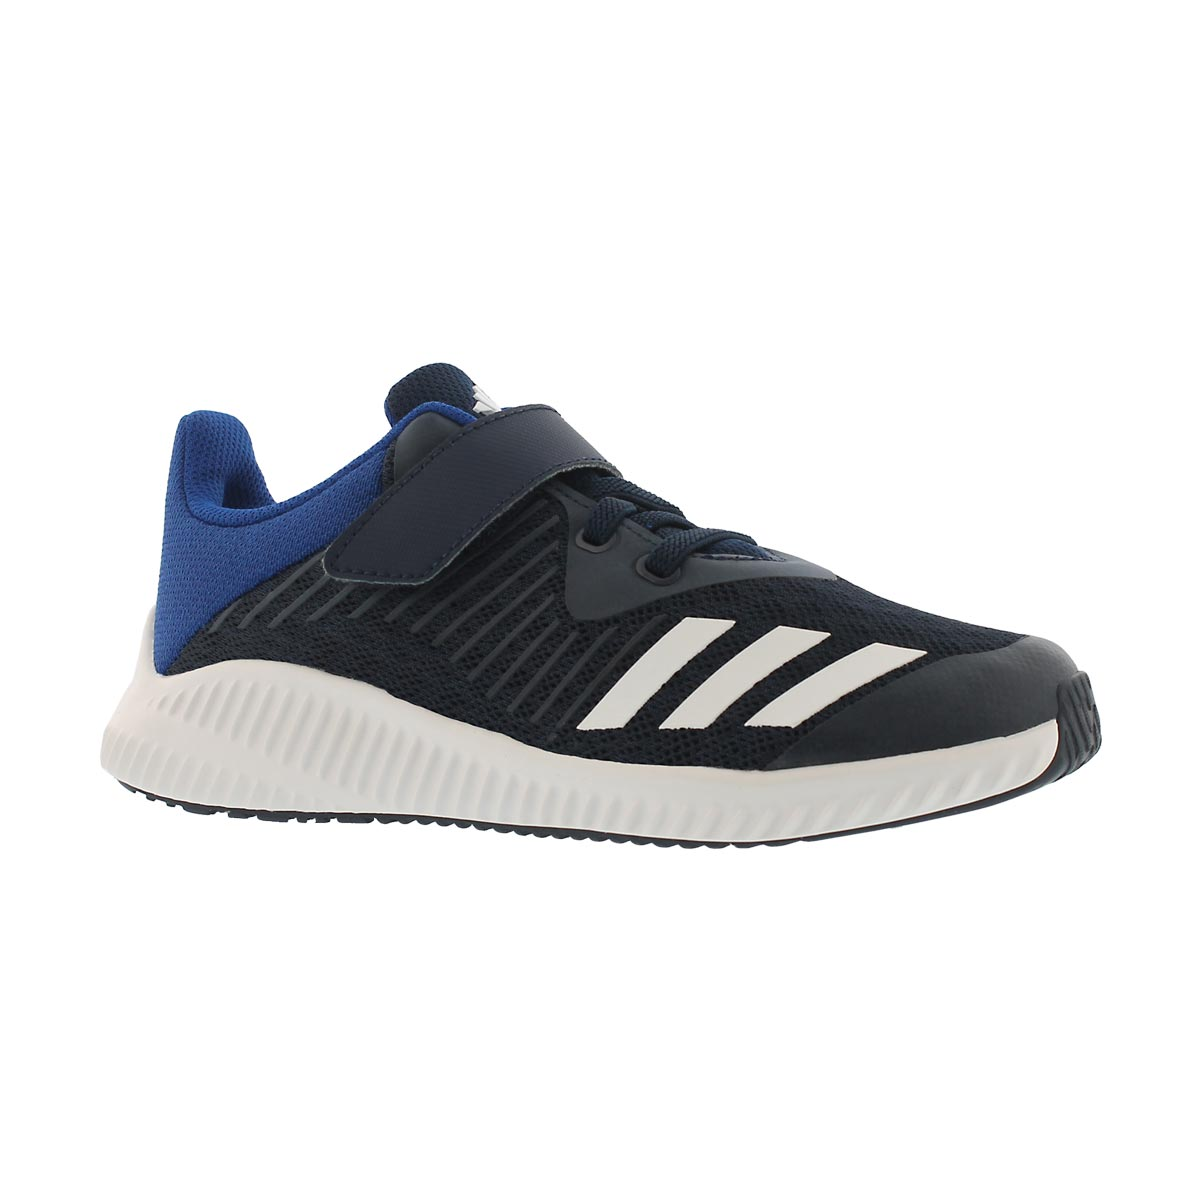 Kids' FORTAFUN EL navy/white/royal sneakers